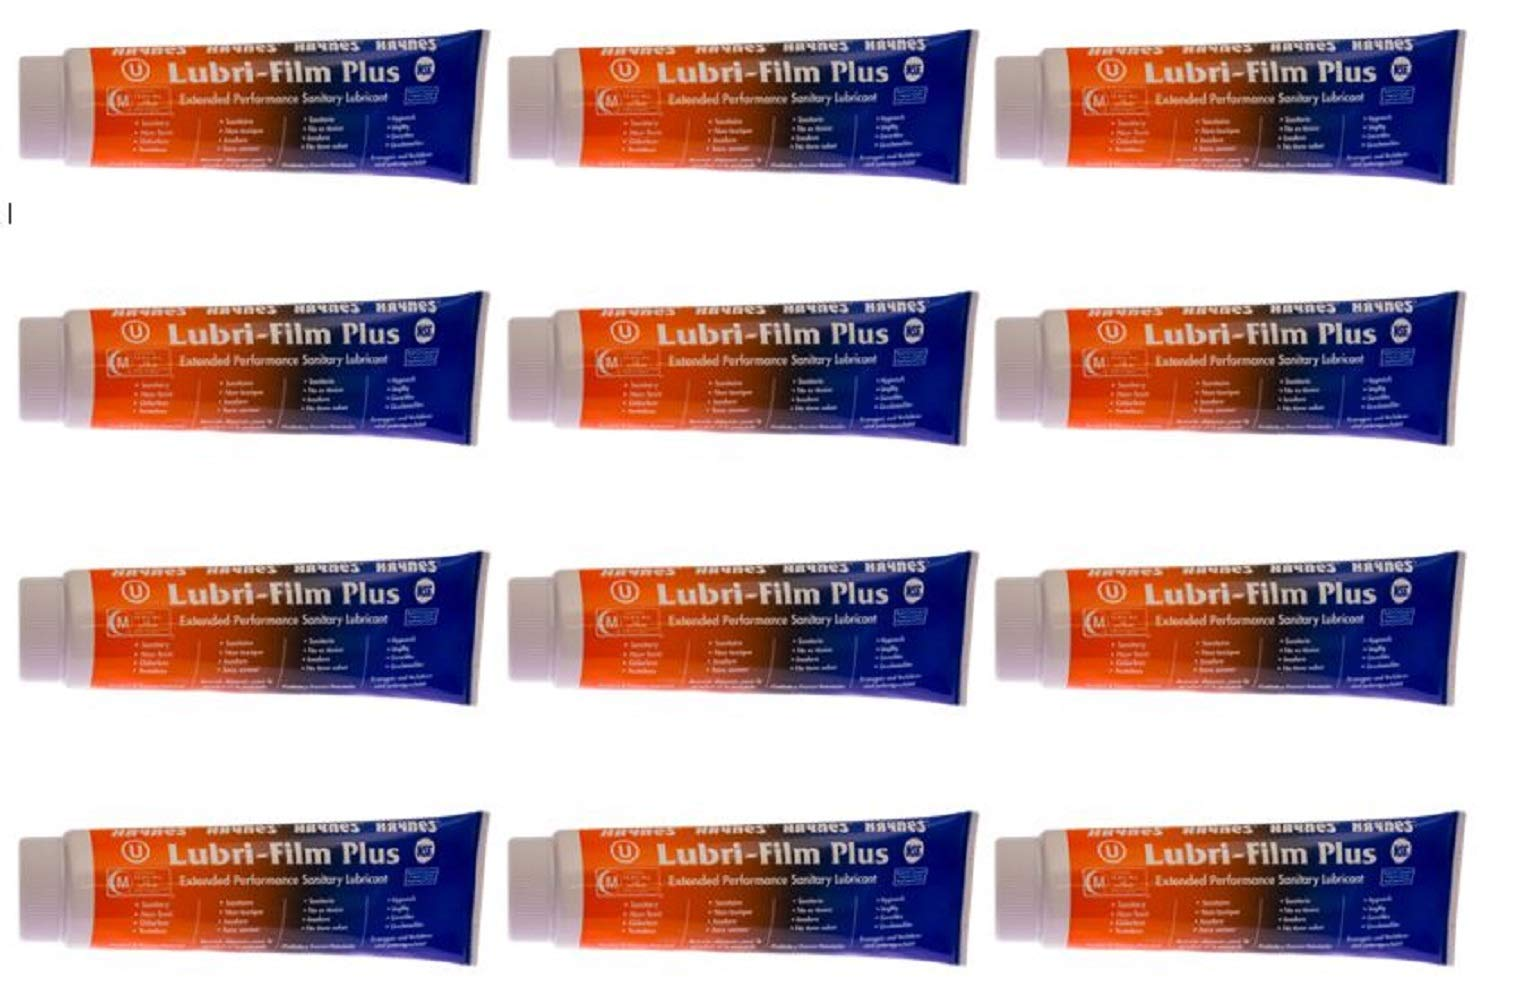 Haynes Lubri-Film Plus, 4 oz Tube, Extended Performance Sanitary Lubricant, Pack of 12 Tubes